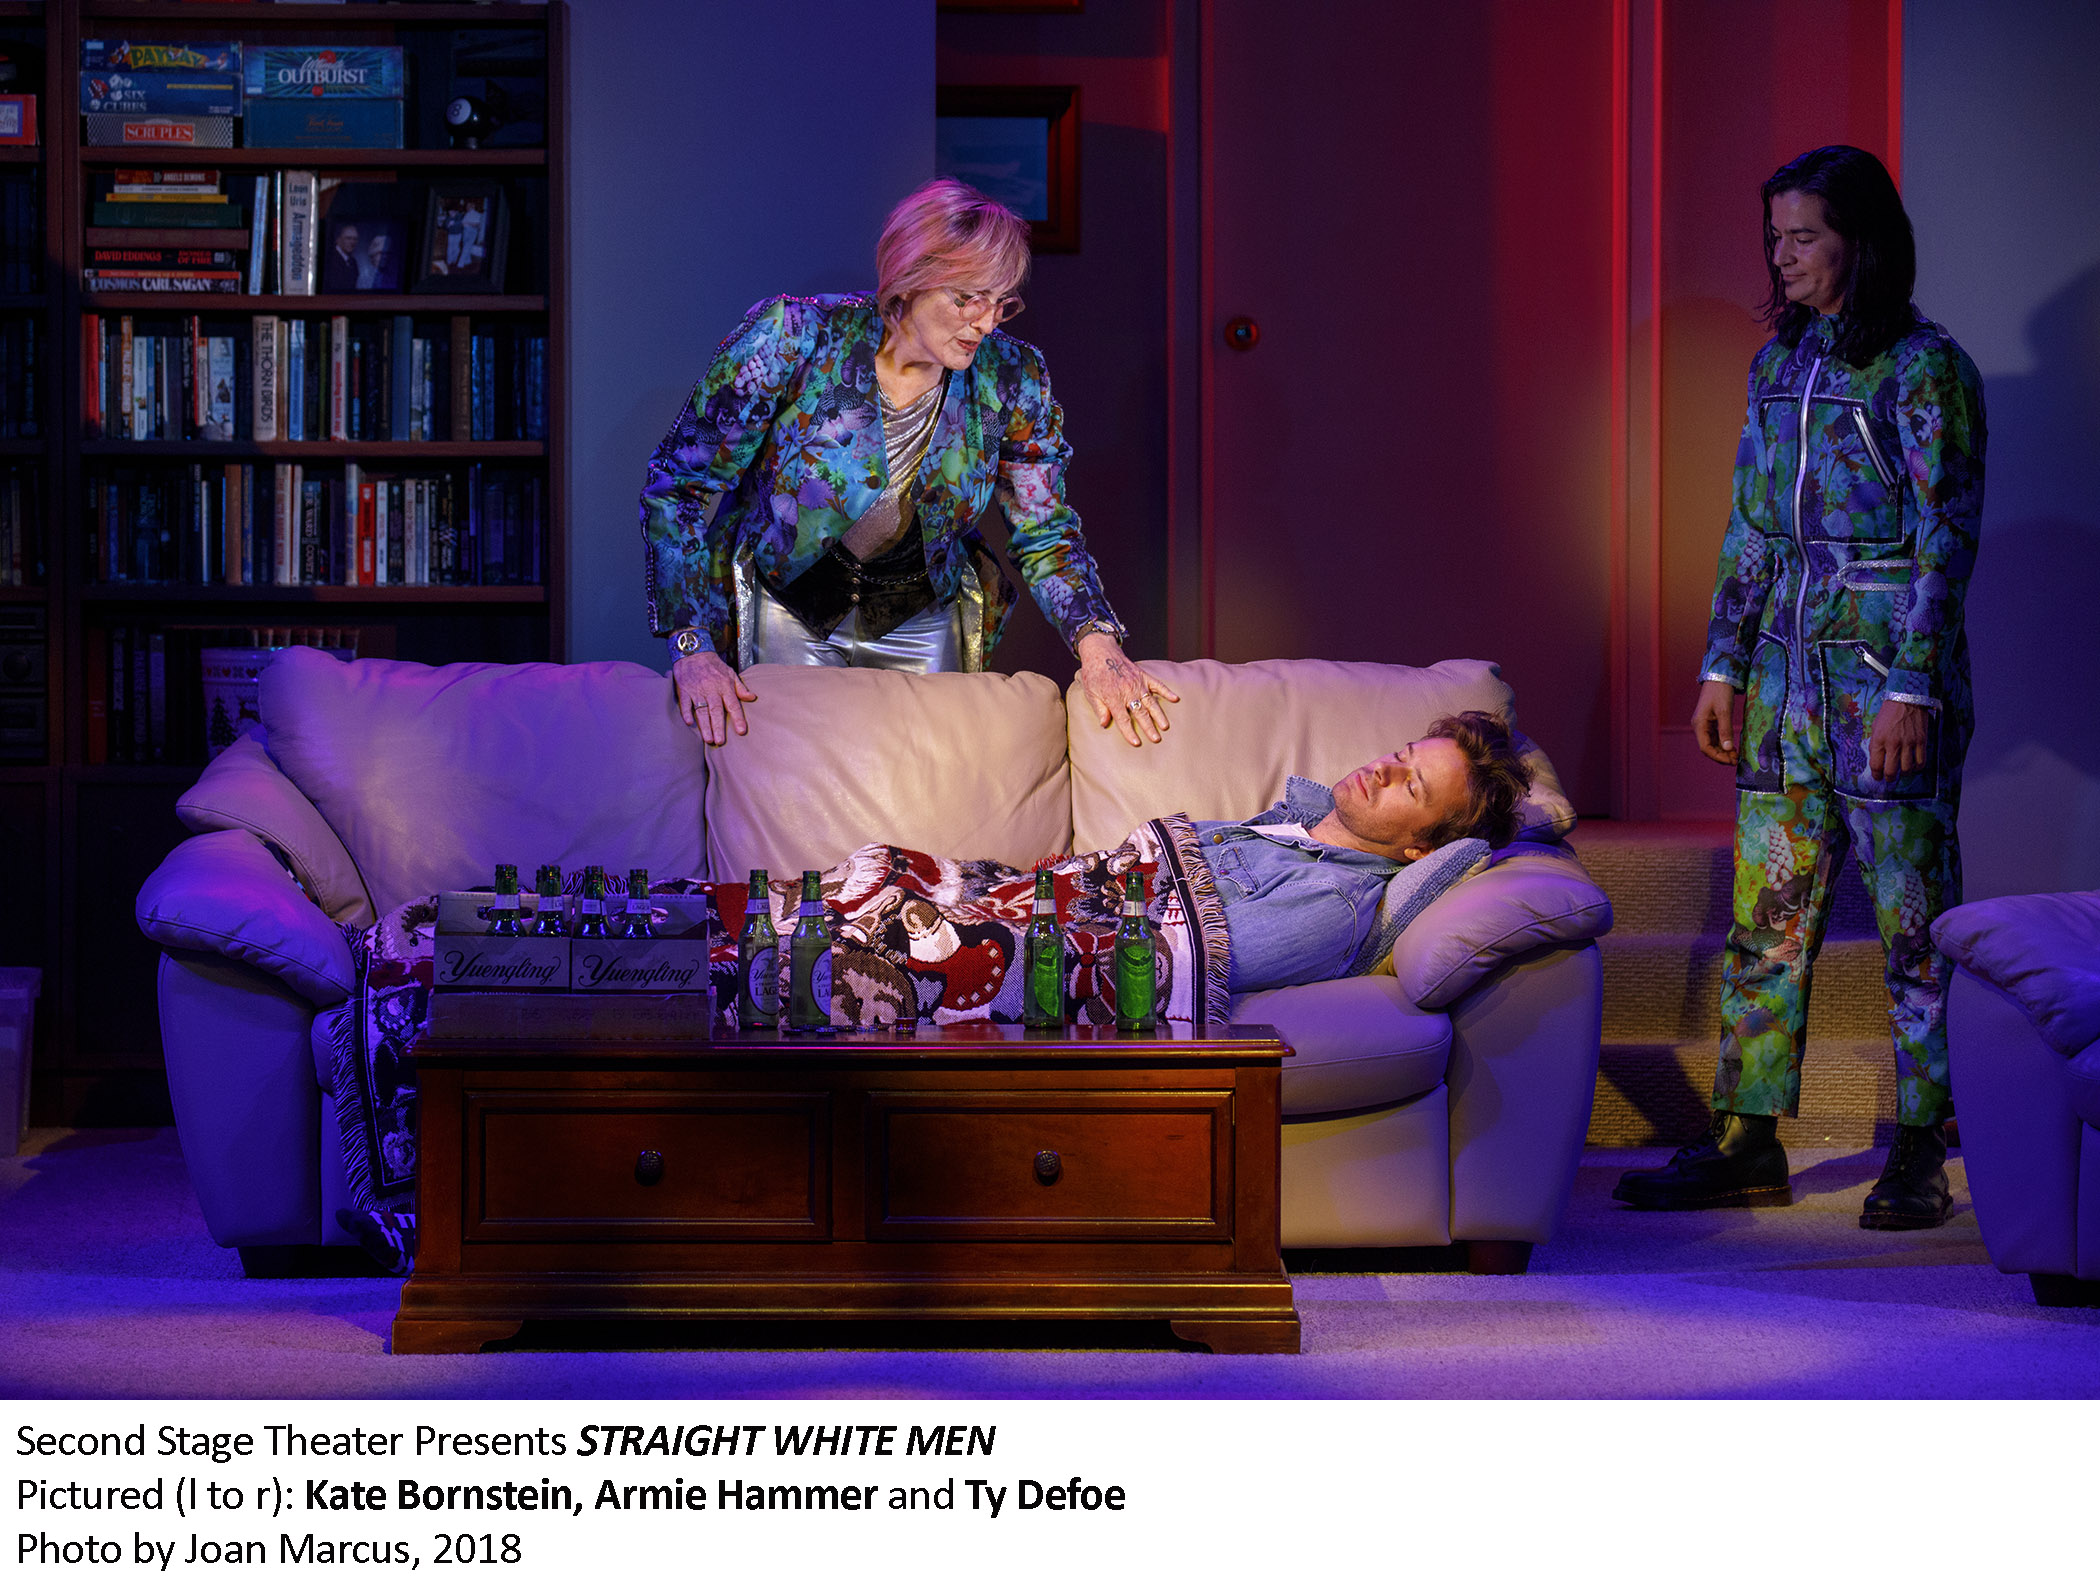 0139_Kate Bornstein, Armie Hammer and Ty Defoe in STRAIGHT WHITE MEN, Photo by Joan Marcus, 2018.jpg